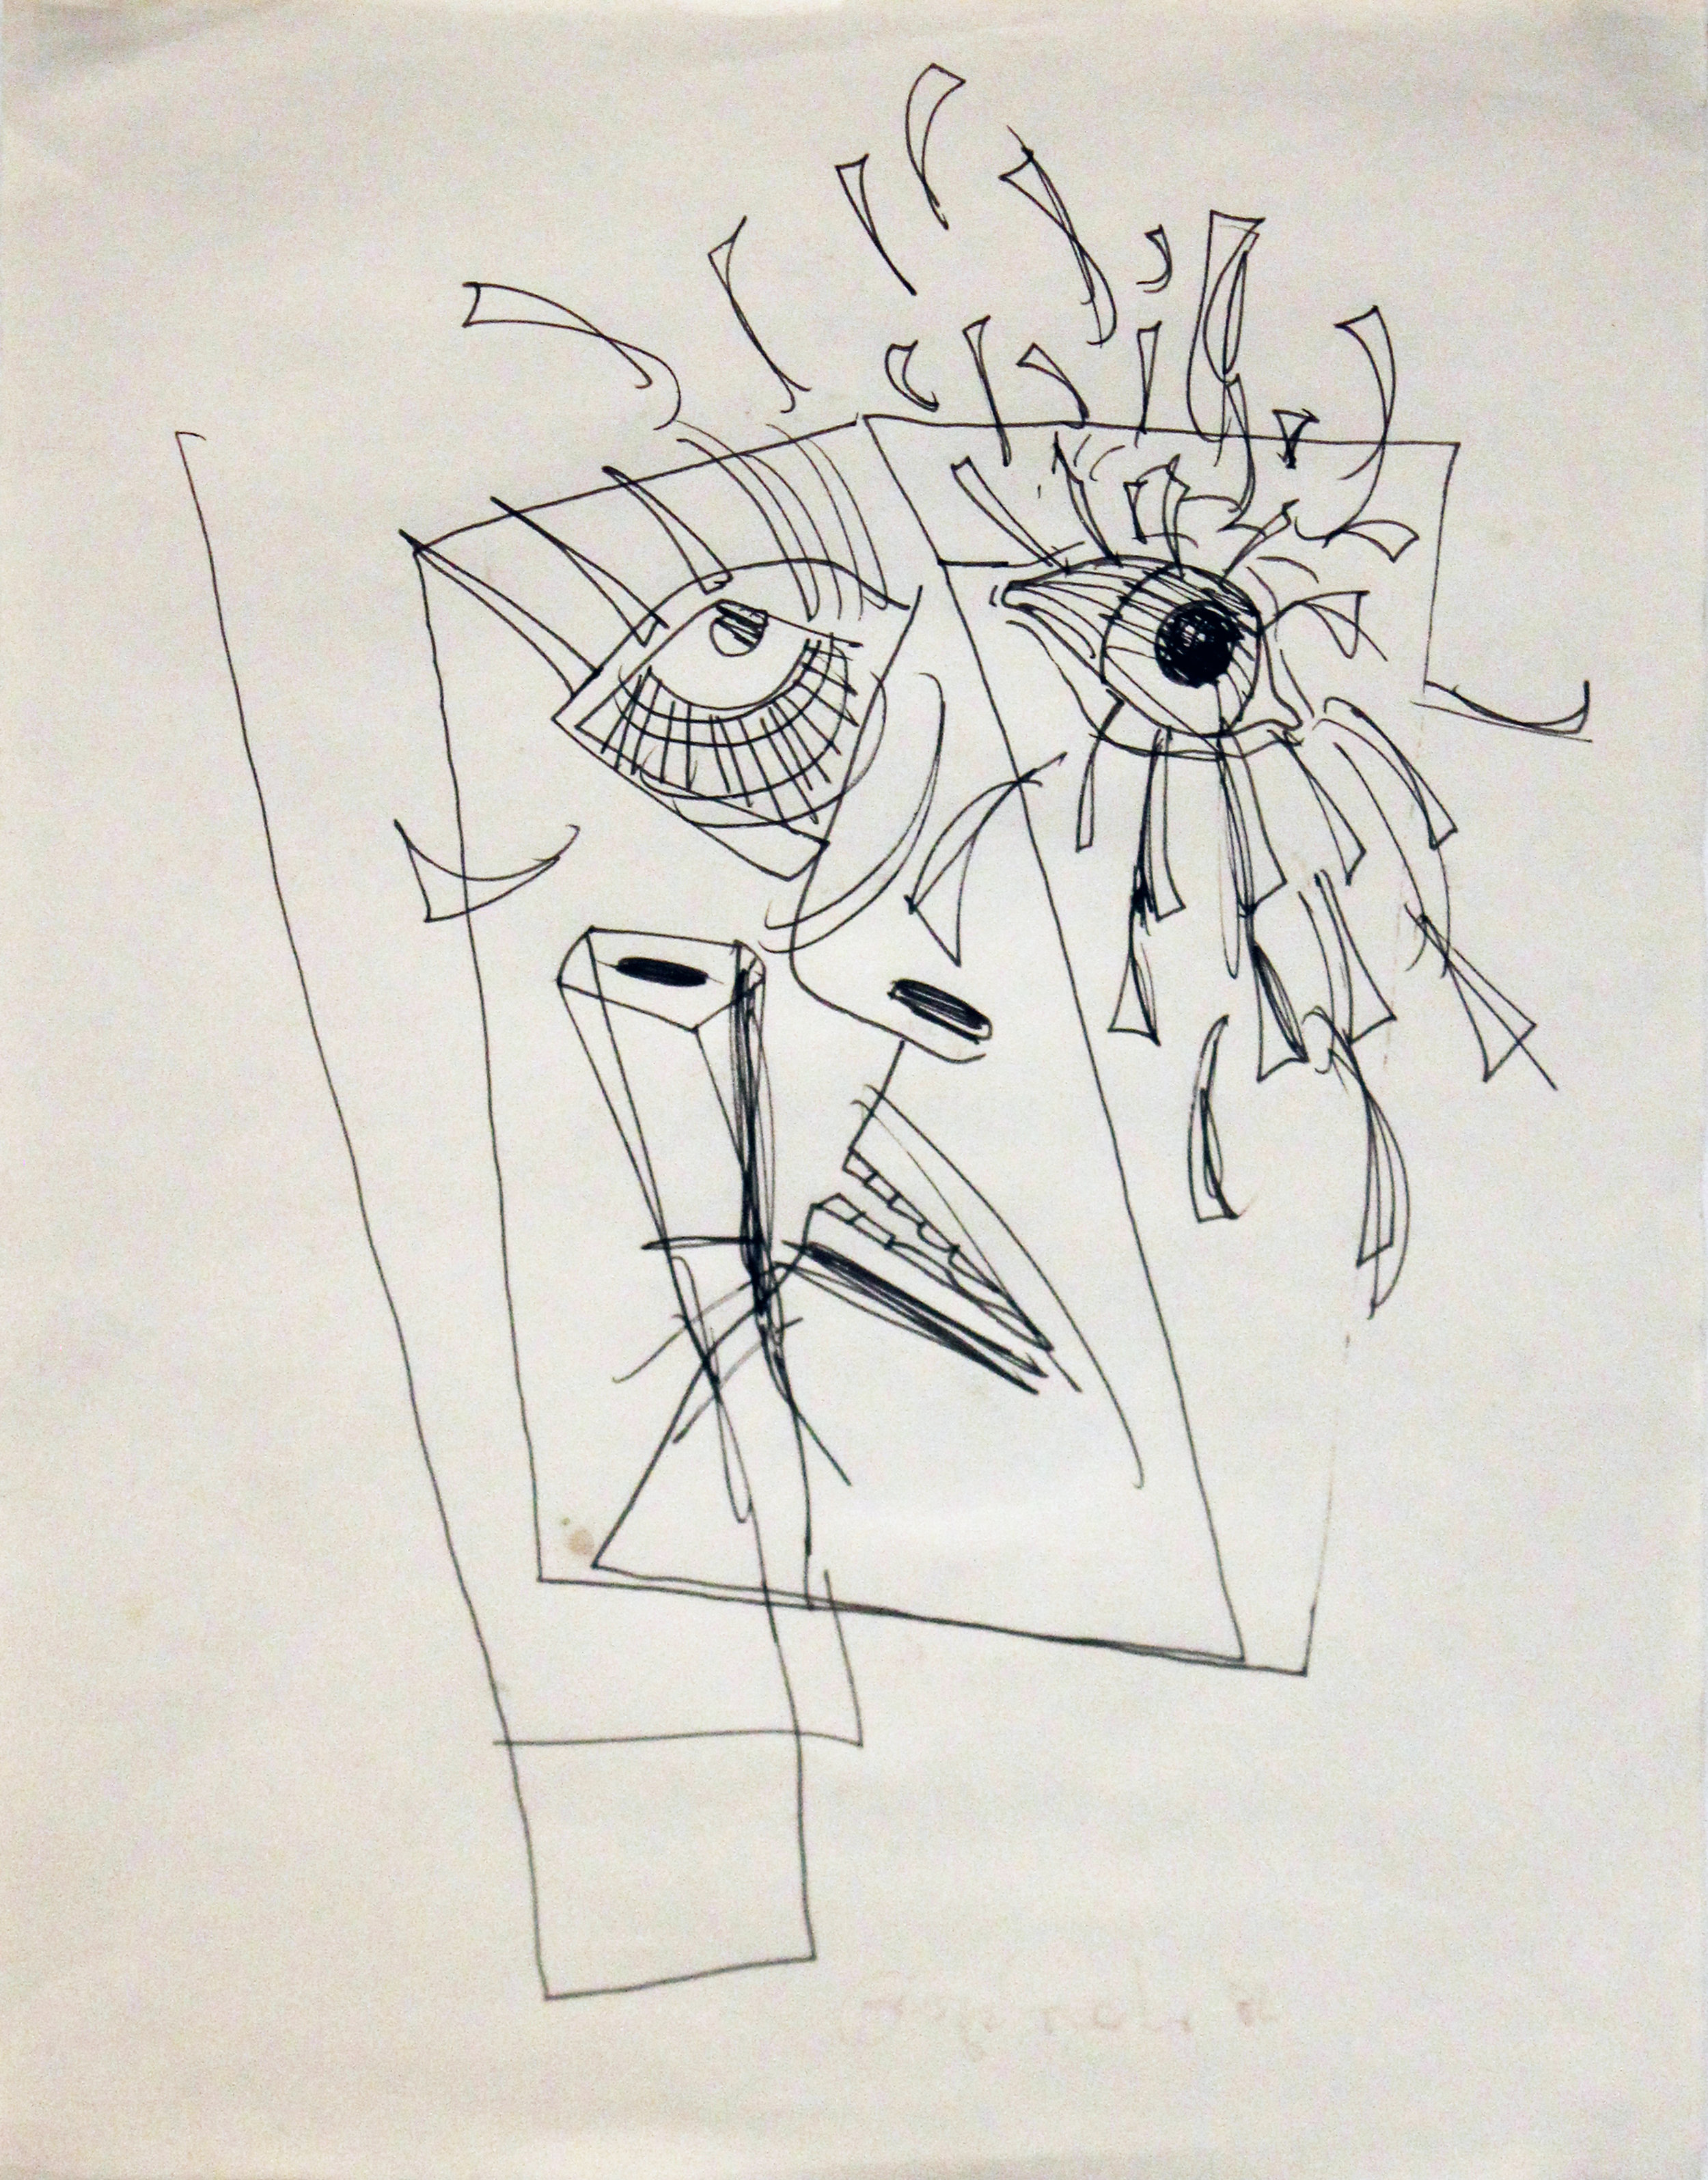 George Condo    Face II , 1982 Ink on paper Signed and dated on recto Sheet: 11.5 x 9 inches; Framed: 17.75 x 14.75 inches Provenance: Turskey & Whitney Gallery, Los Angeles, CA, tag on verso Estimate: $2,000/$3,000